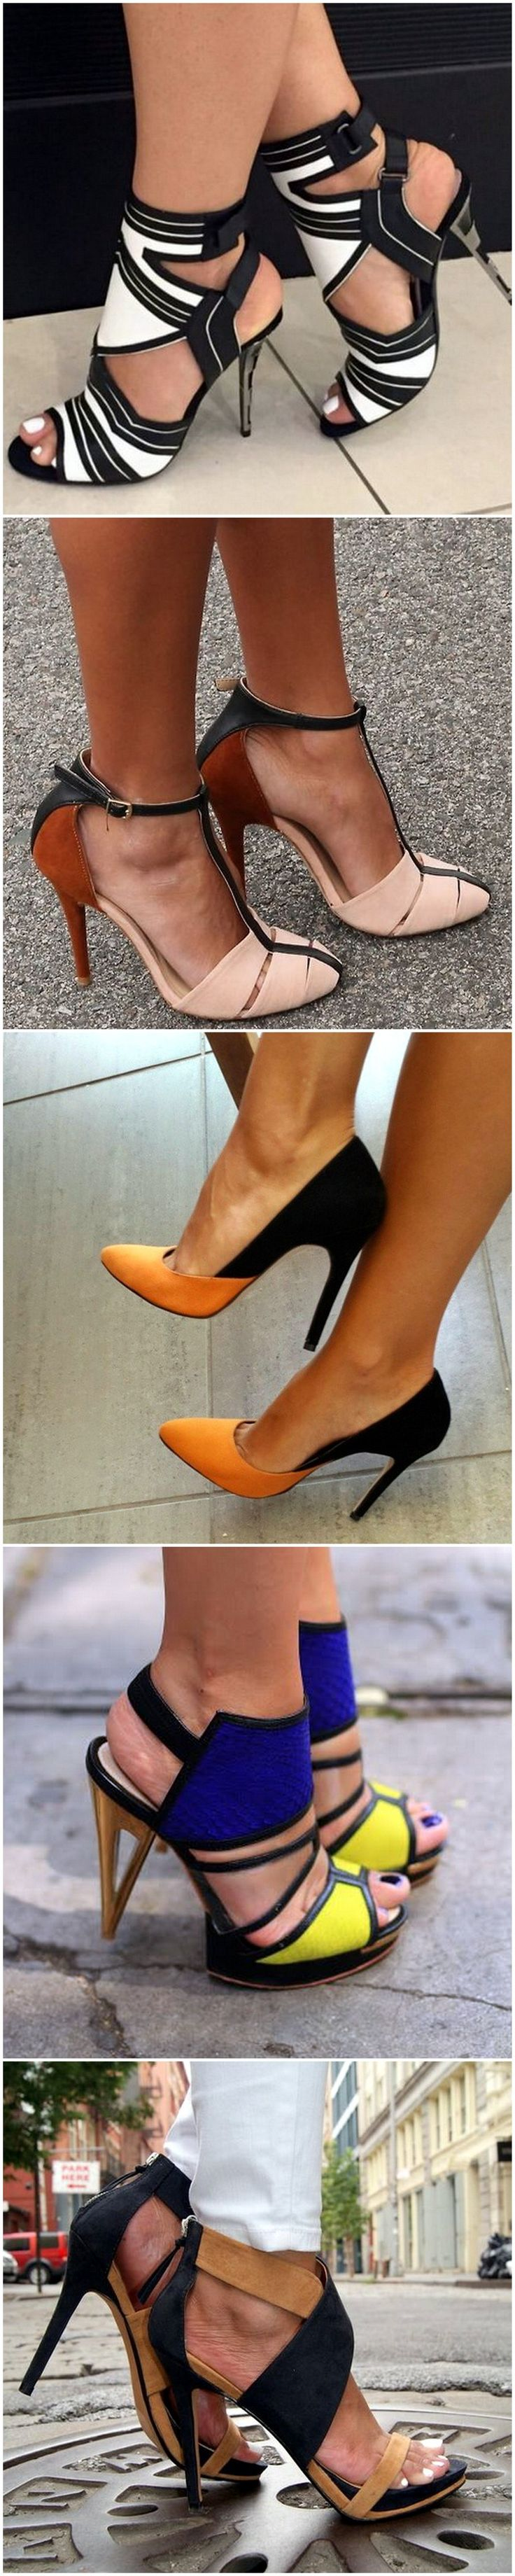 Here is another great Instagram account to follow for shoe lovers. Check out @chalany.high.heels -- Lots of great designer heels and shoe posts. Follow @stylees